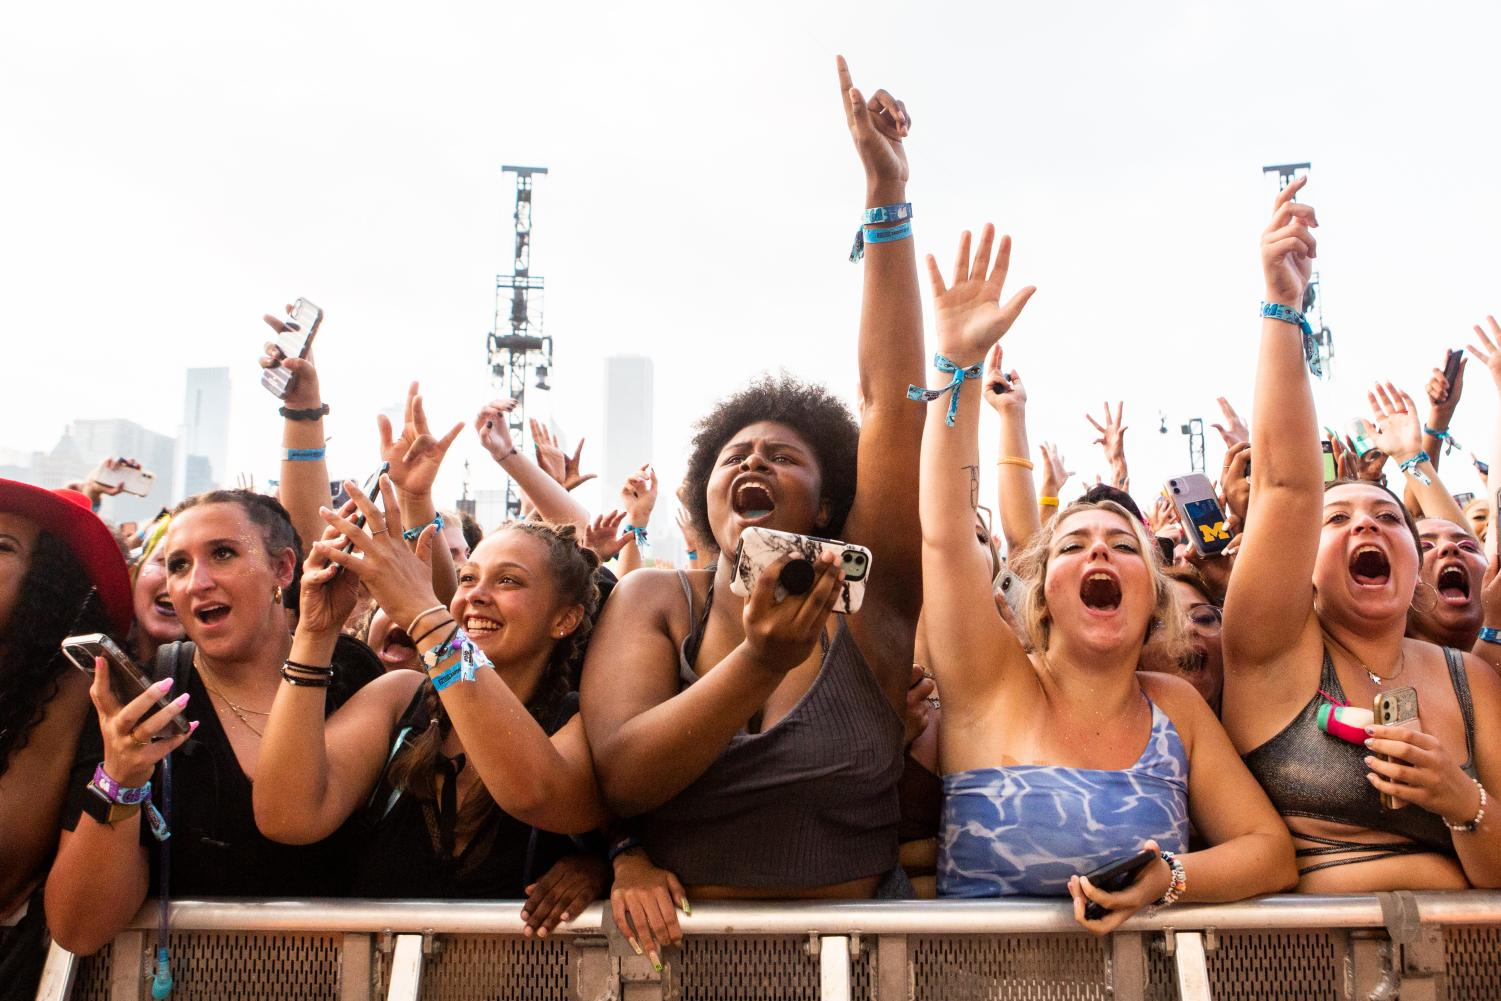 Gallery+%7C+Saturday+and+Sunday+festivities+at+Lollapalooza+2021